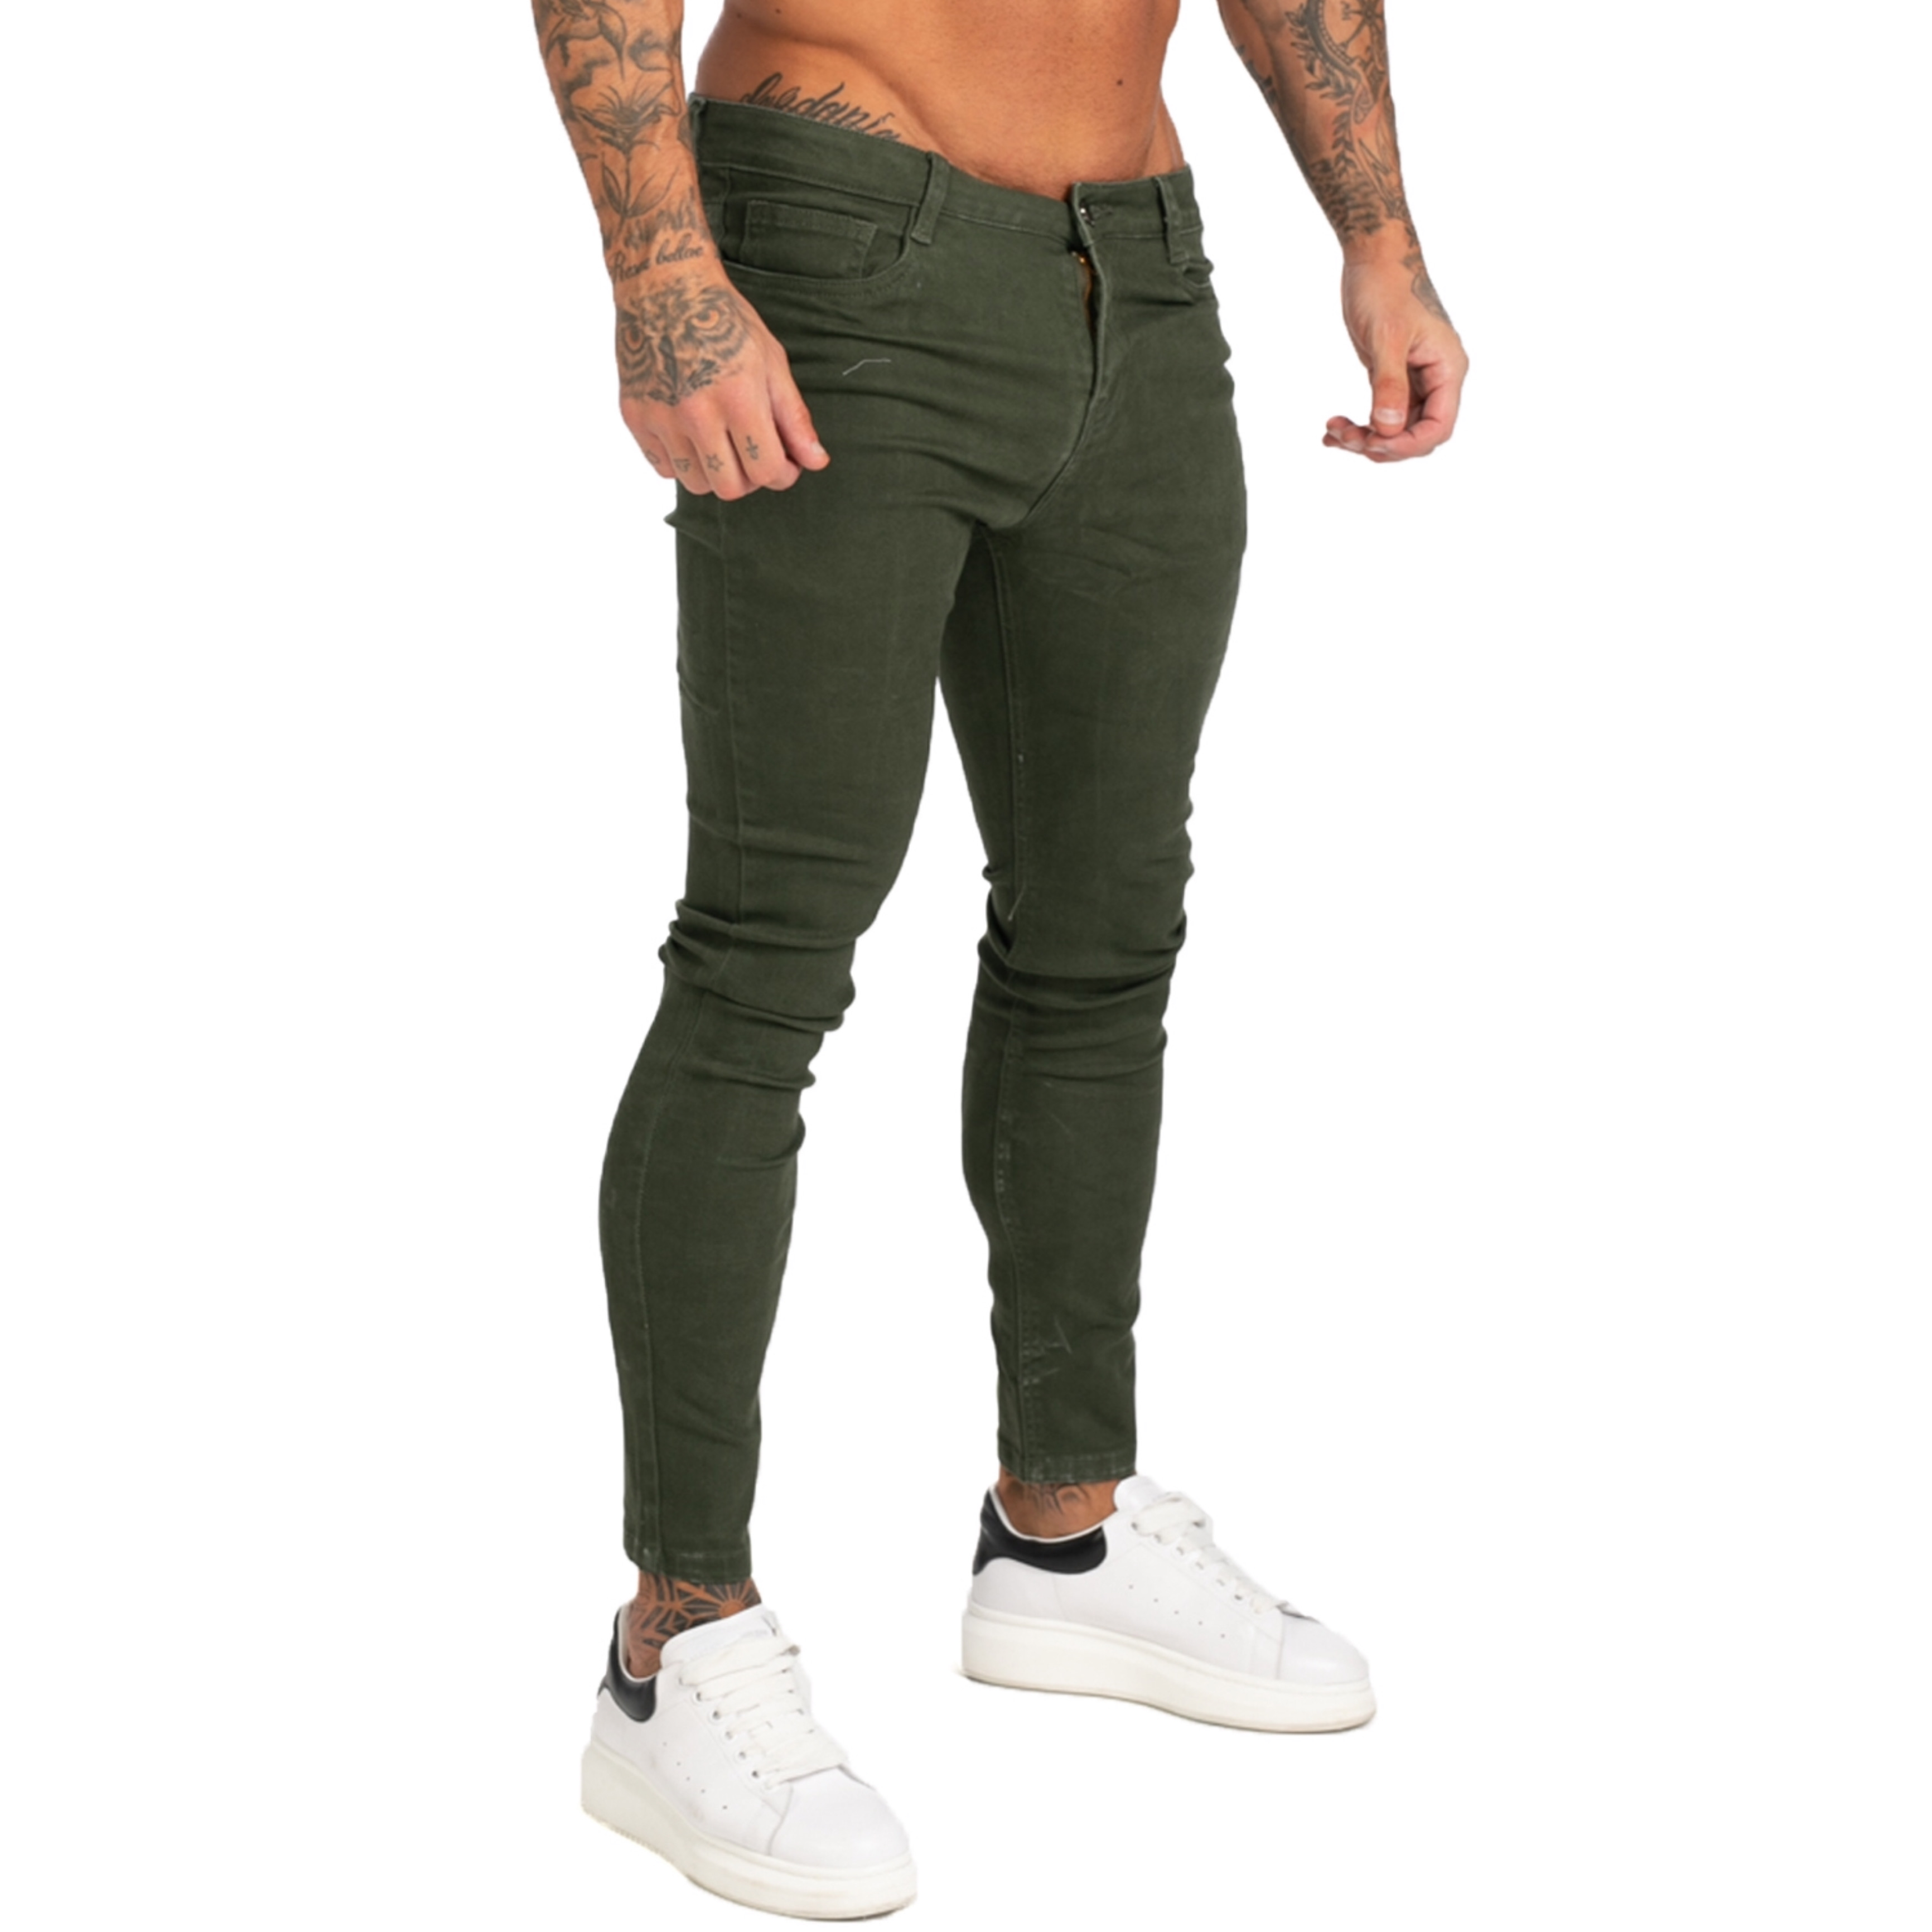 GINGTTO Brand Jeans Men Homme Slim Fit Super Skinny Jeans For Men Hip Hop Ankle Tight Cut Closely To Body Big Size Stretch Zm171